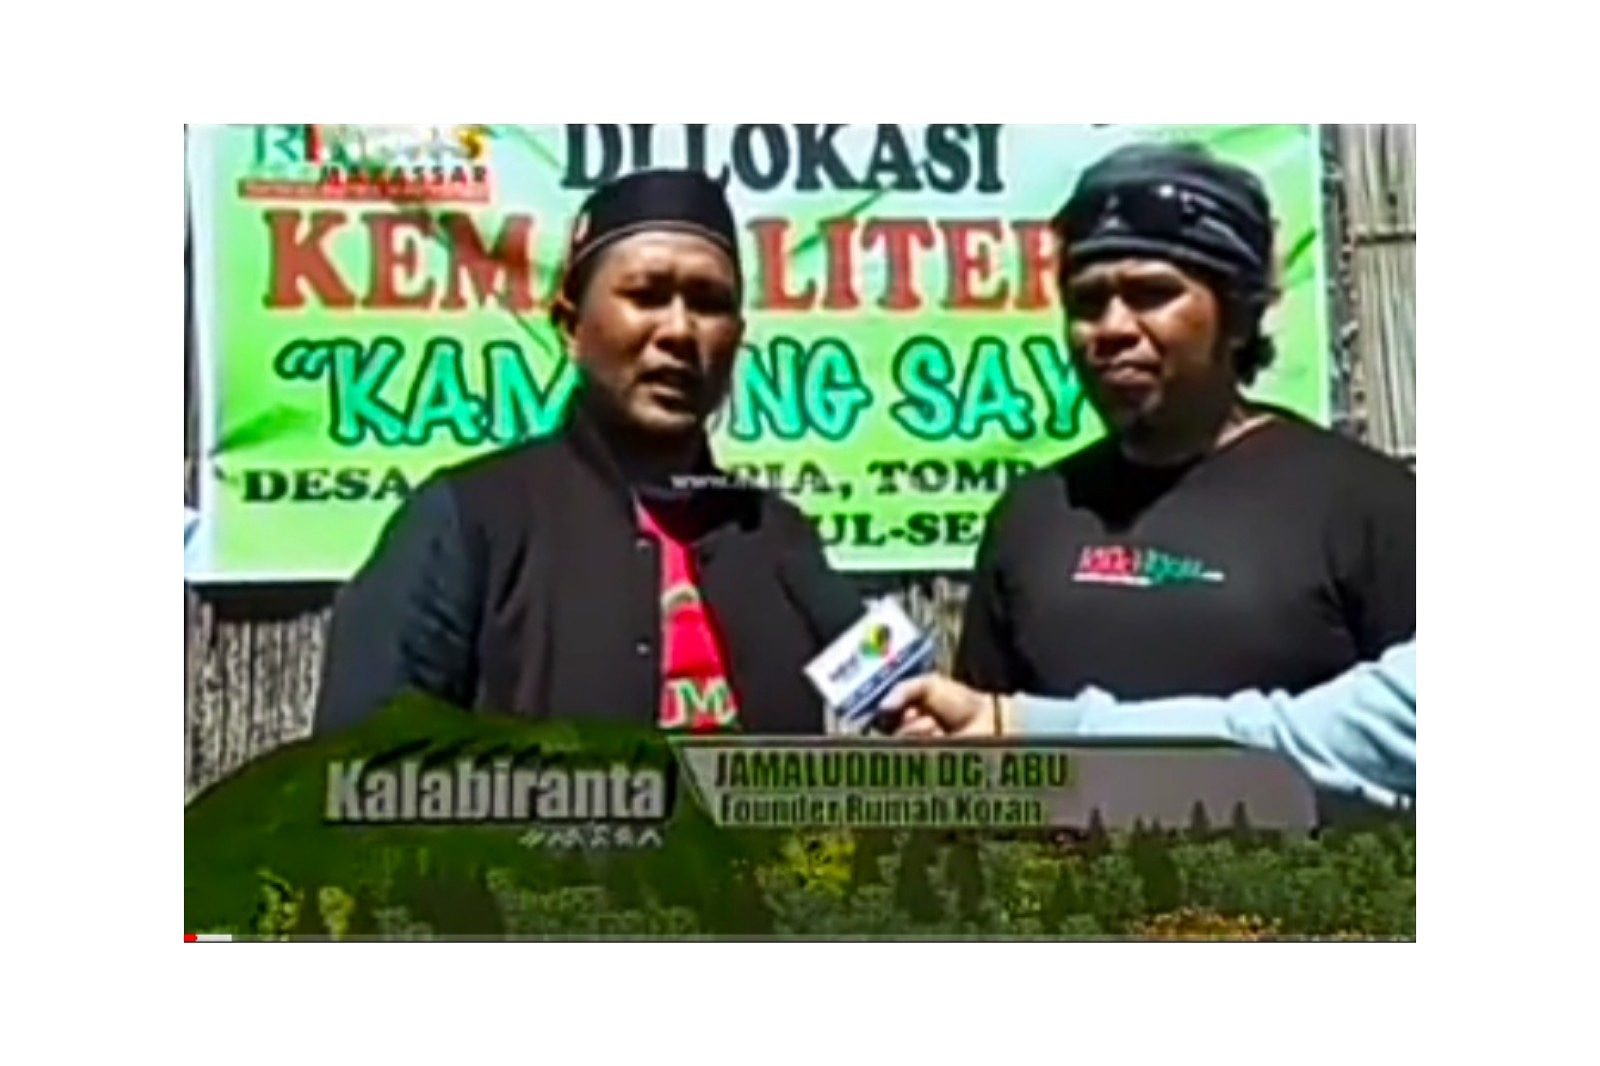 RUMAH KORAN DI INEWS TV